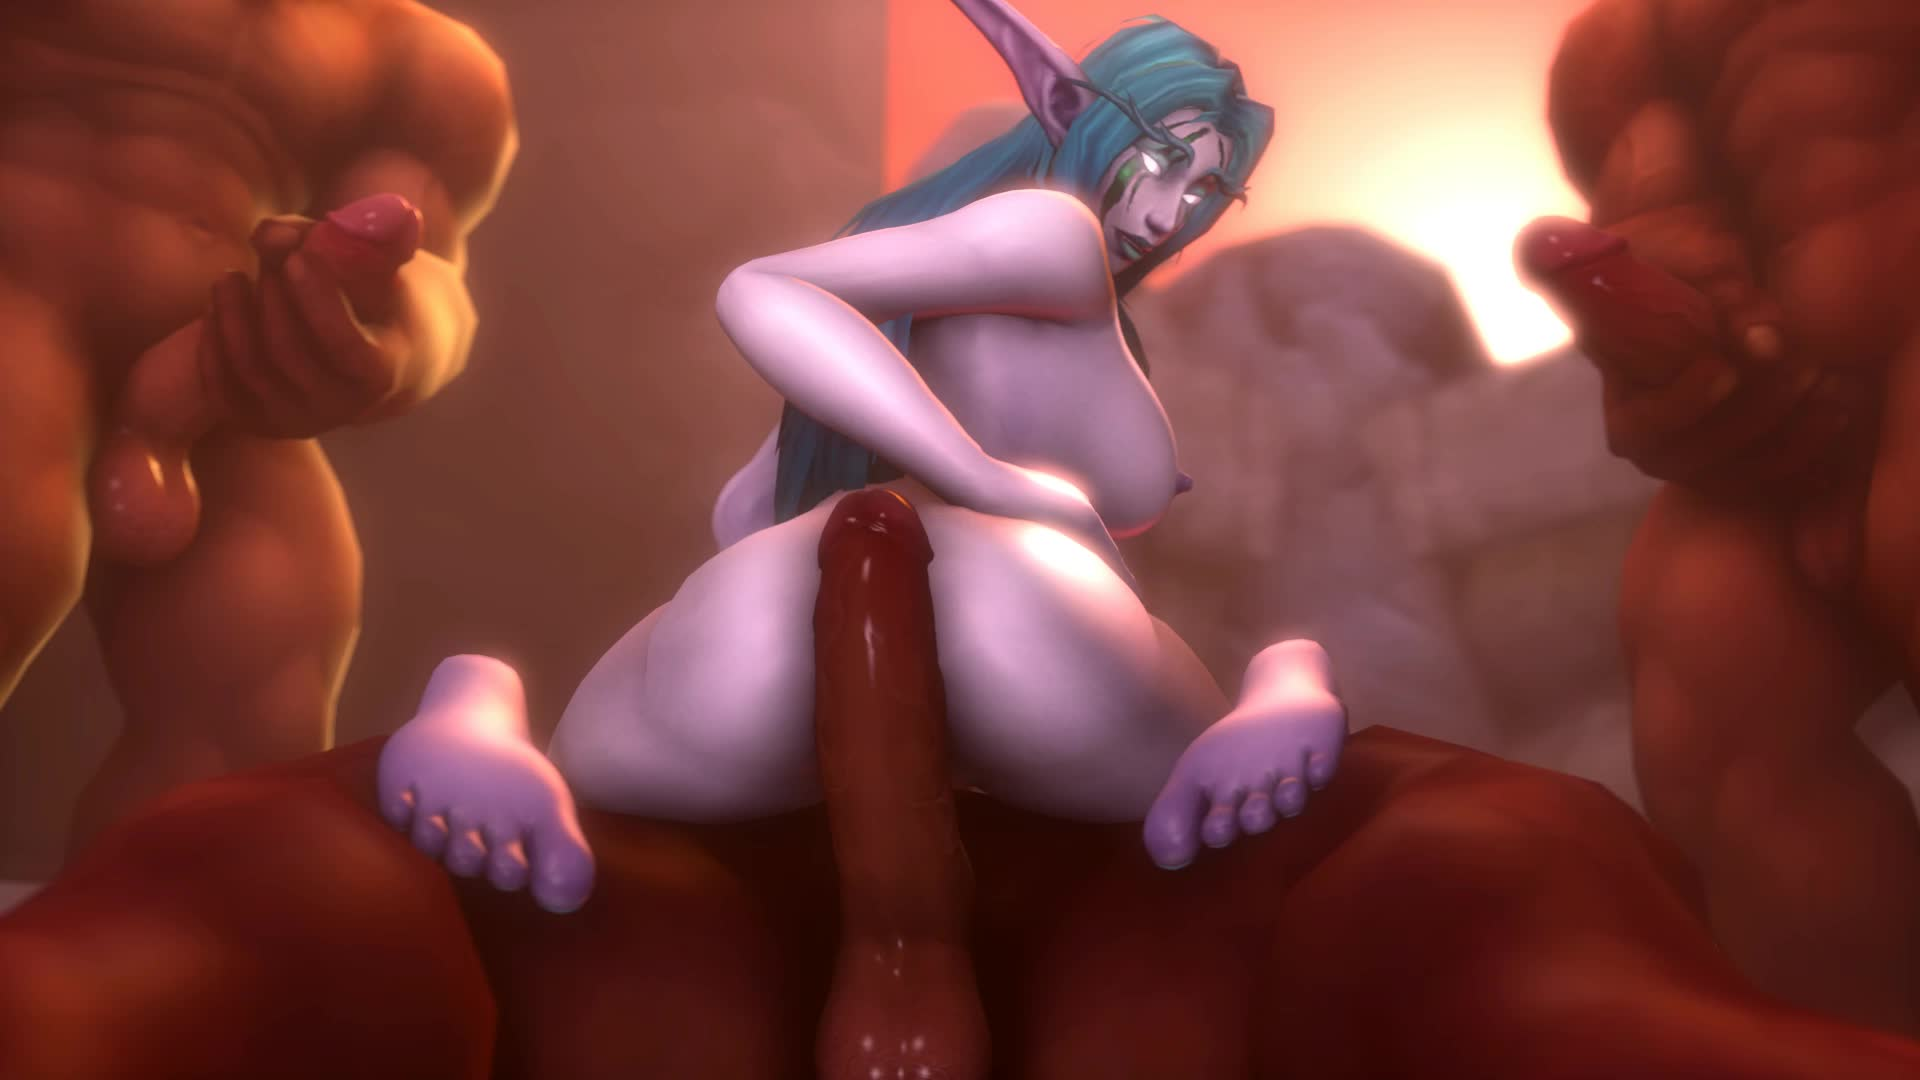 Wow porn hd photo naked toons